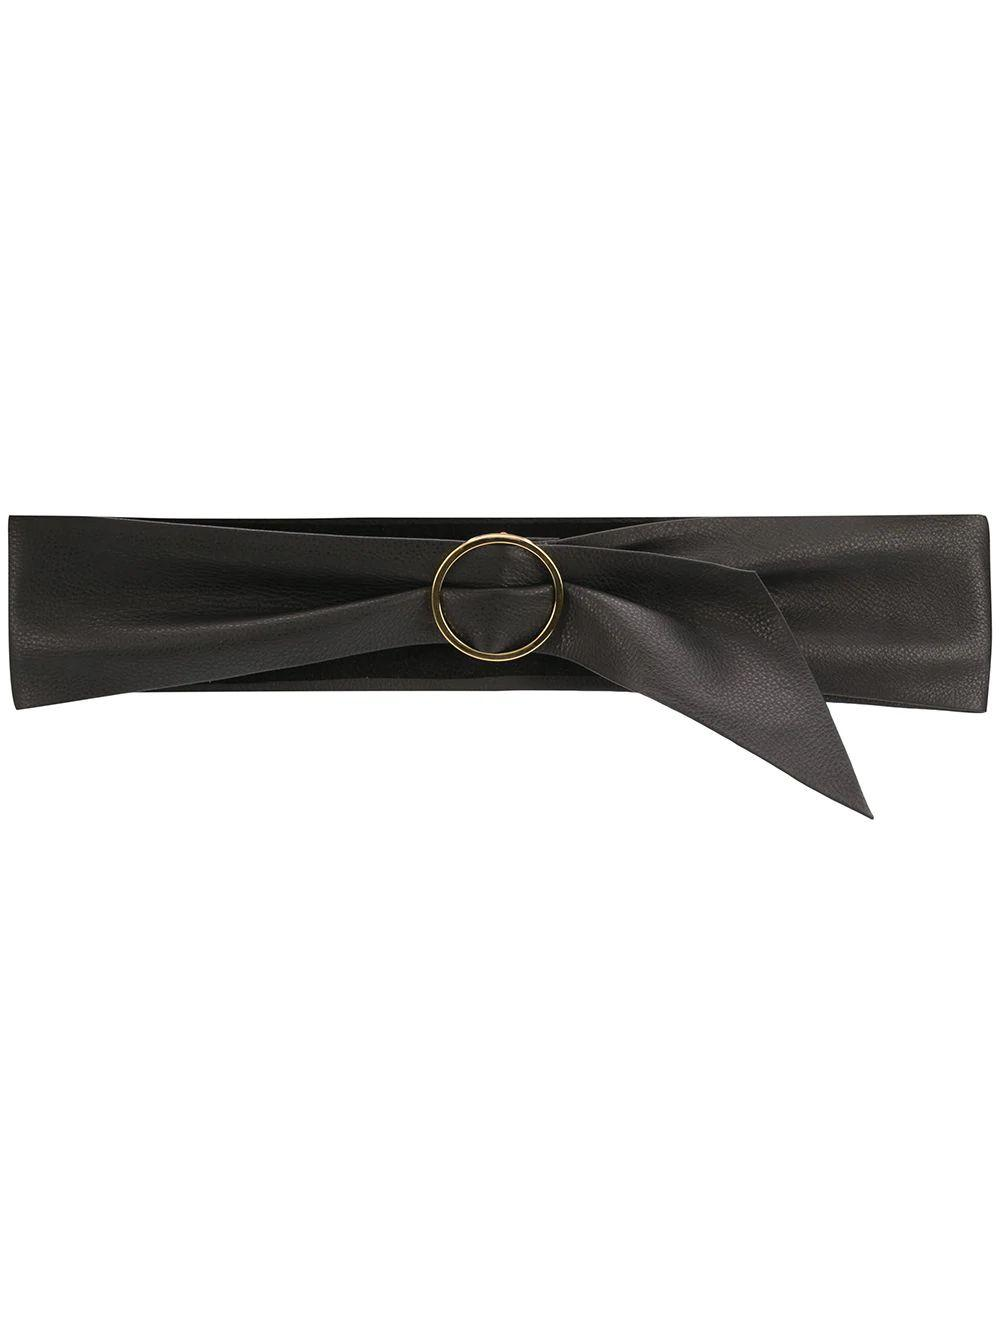 Trisha Wrap Belt